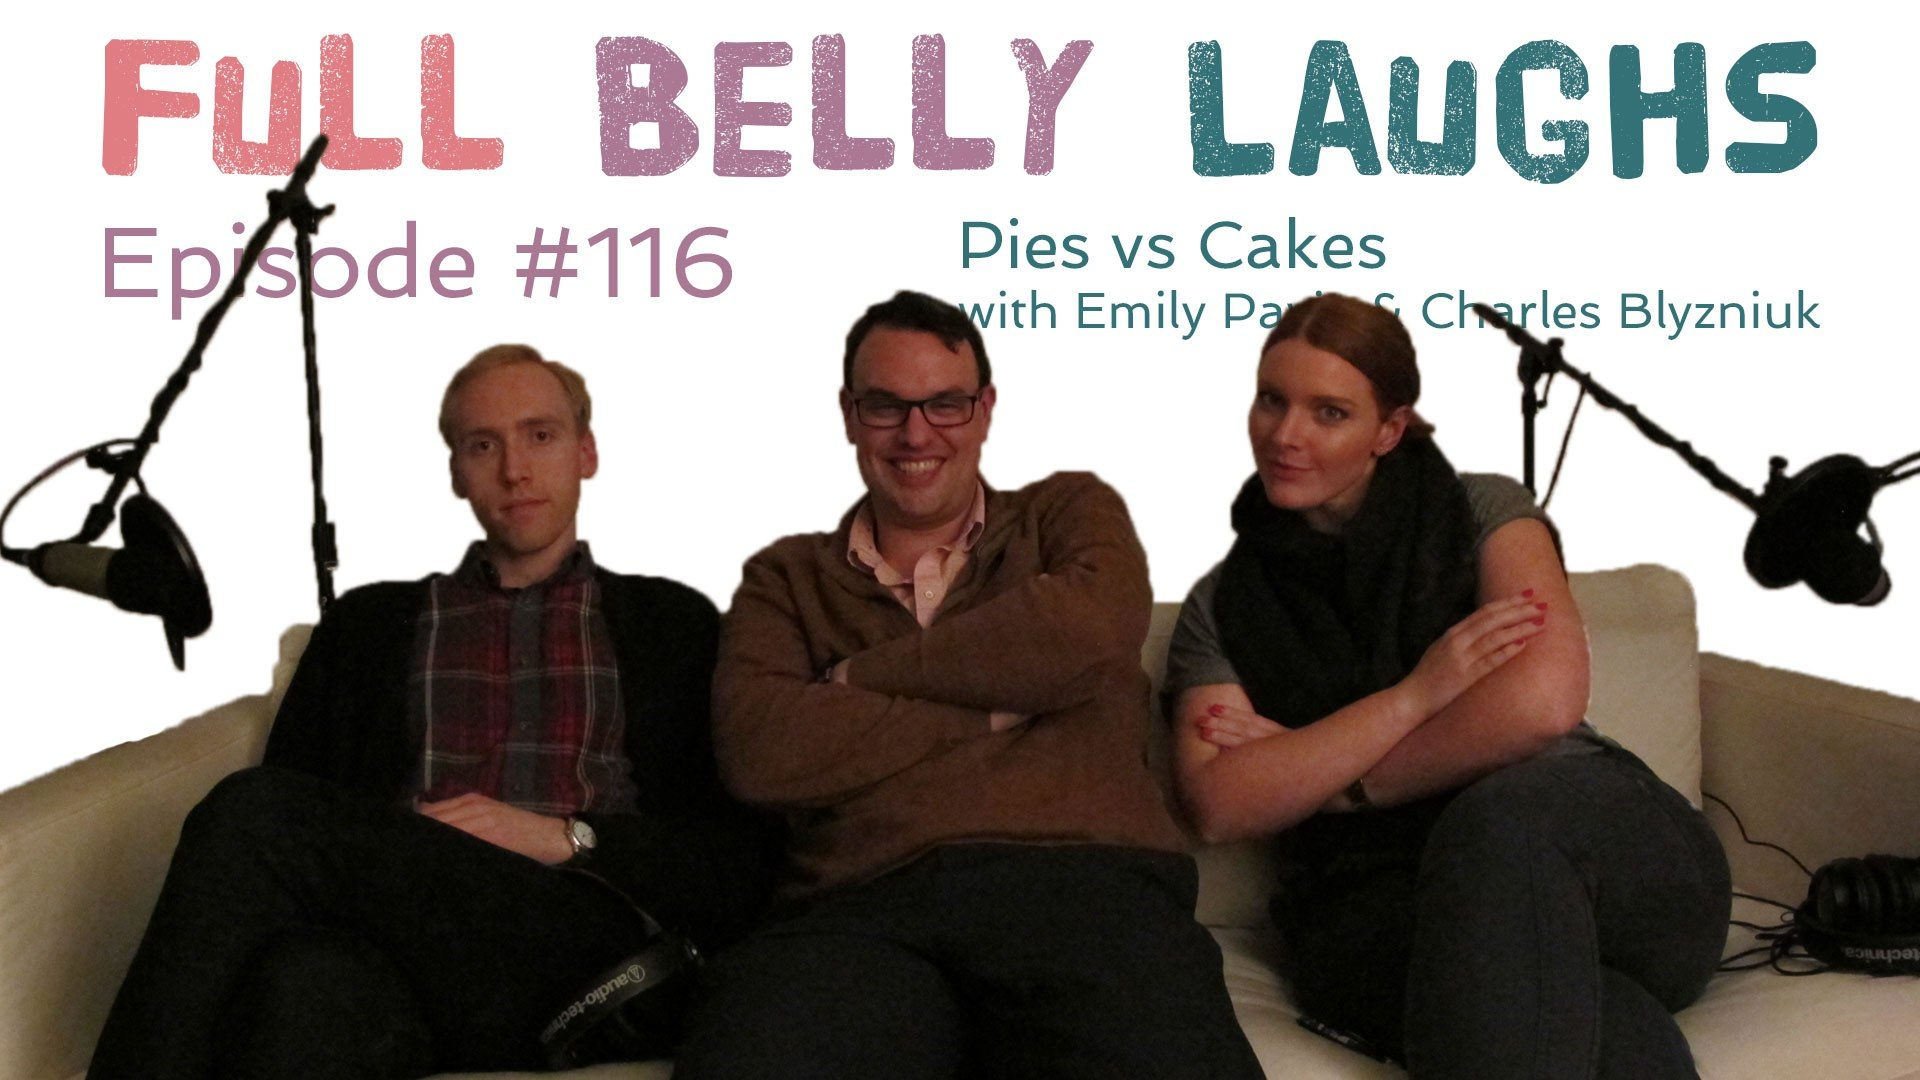 full belly laughs podcast episode 116 cakes vs pies audio artwork